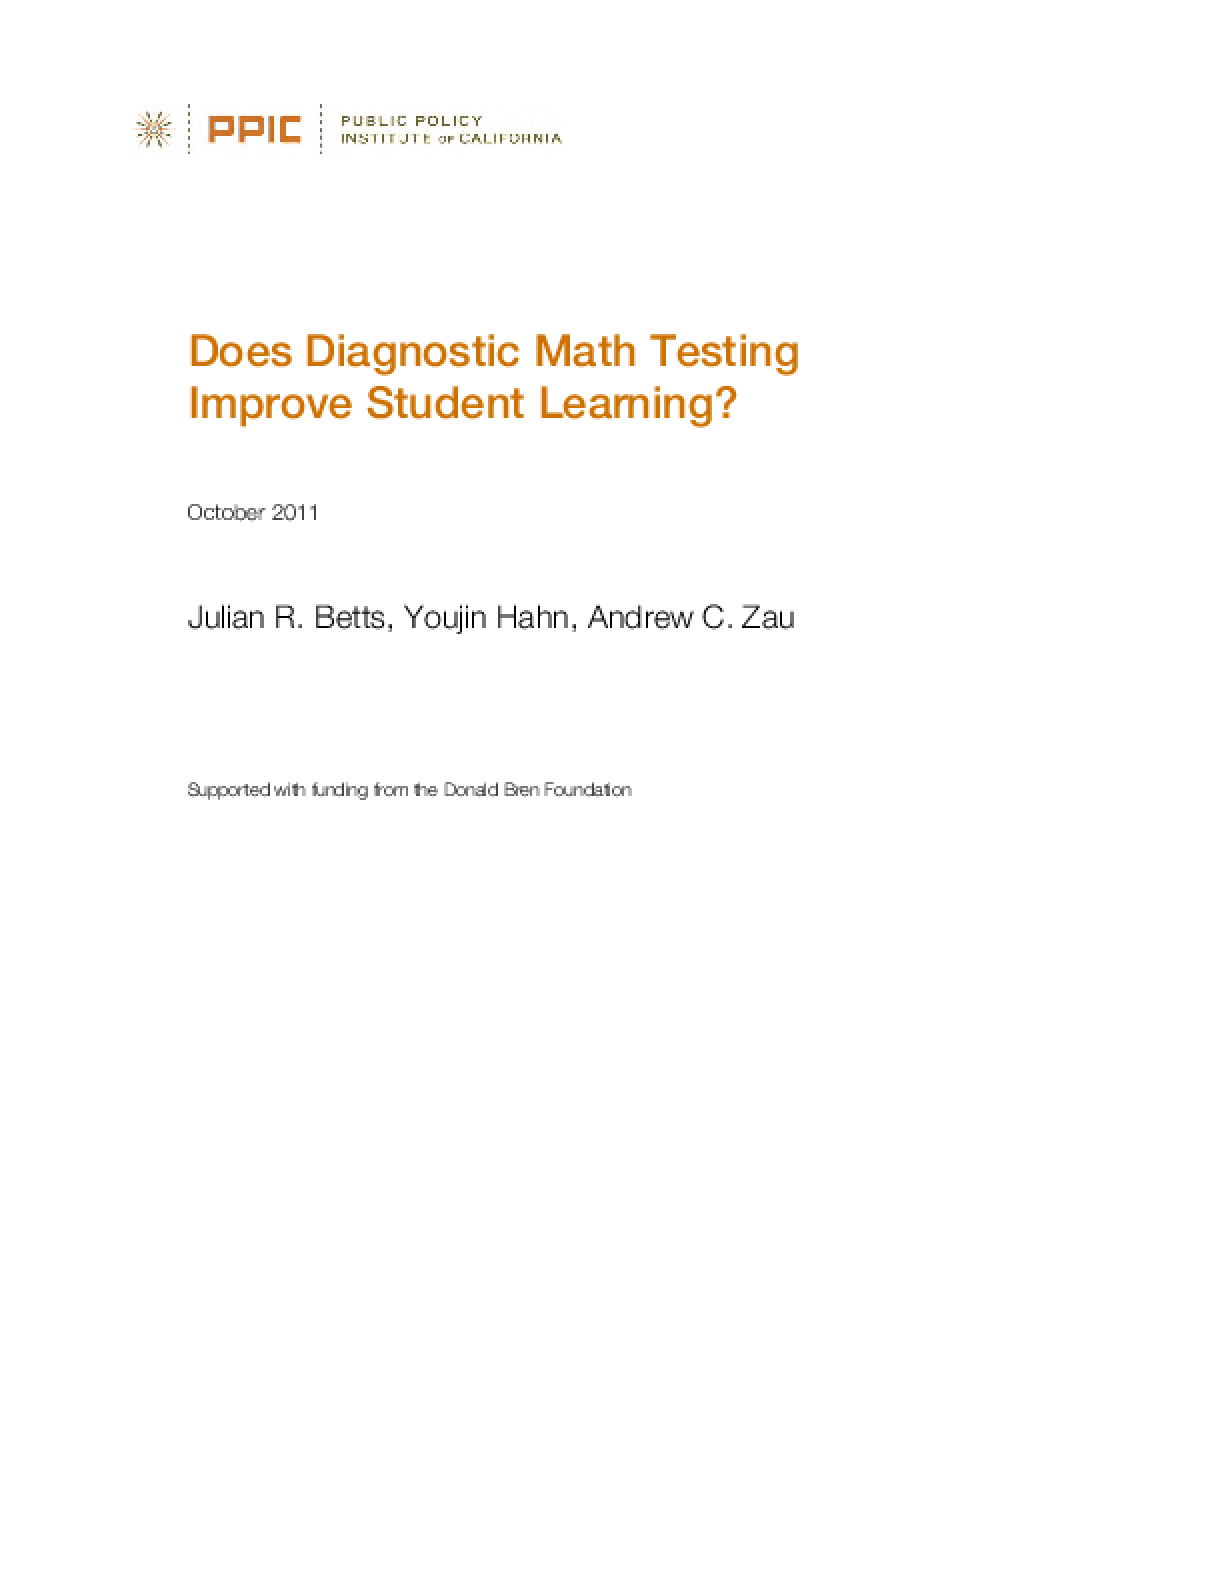 Does Diagnostic Math Testing Improve Student Learning?